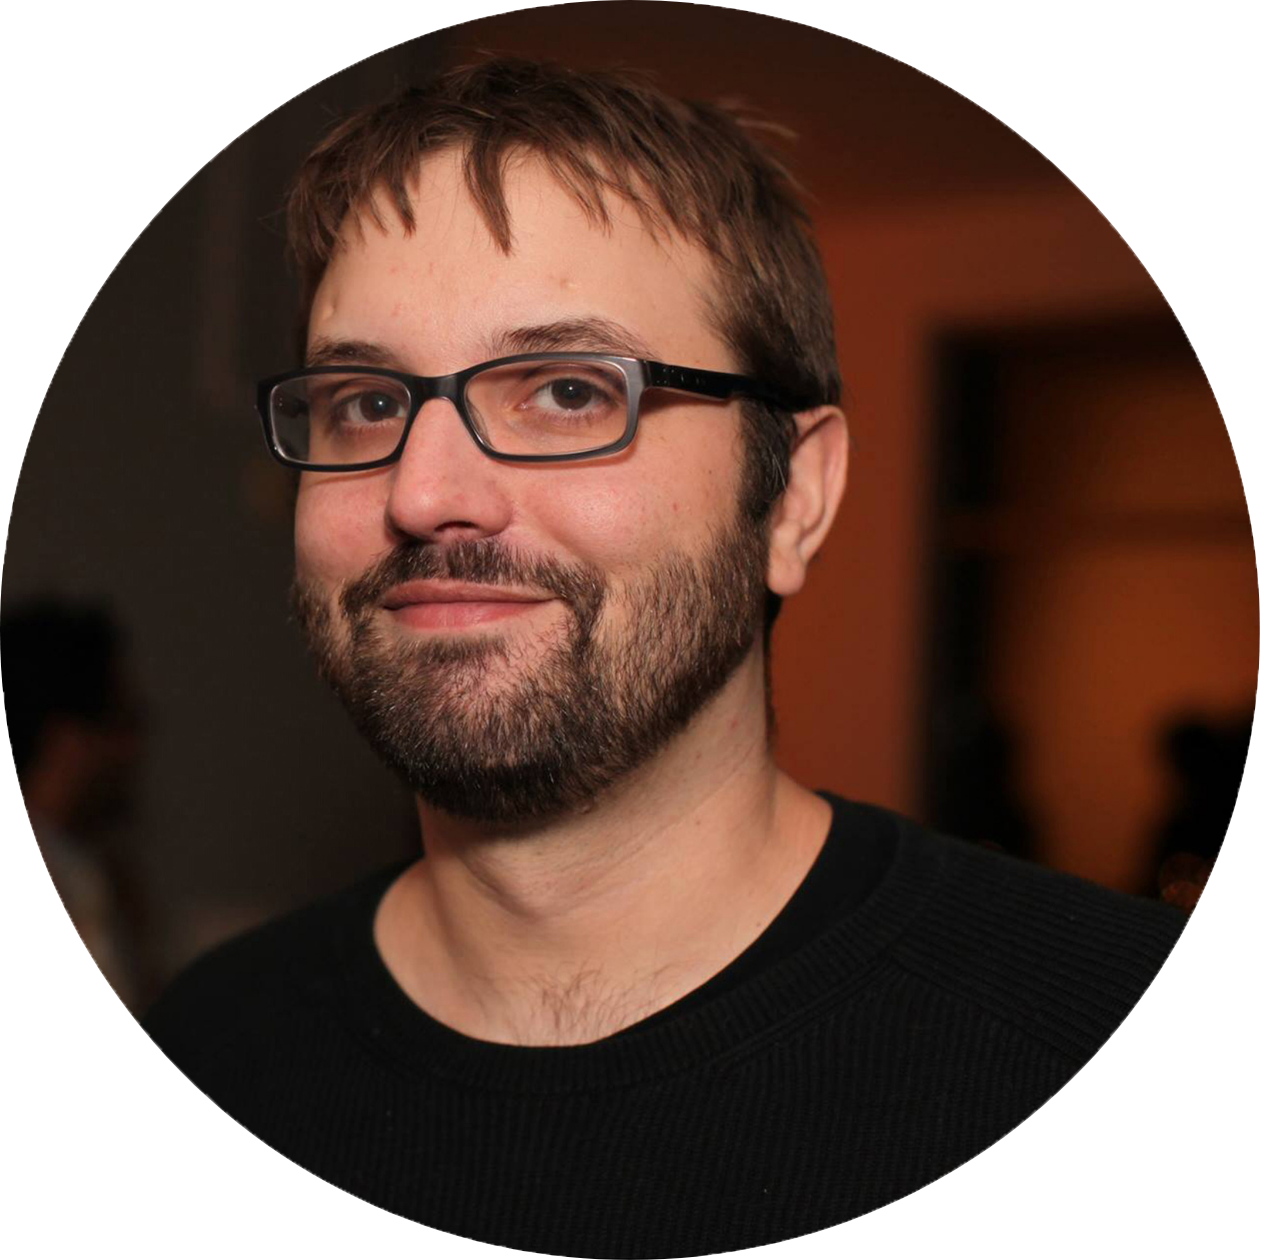 Kurt Kohlstedt is a writer, editor, and producer at 99% Invisible, a radio show and website about design hosted by Roman Mars